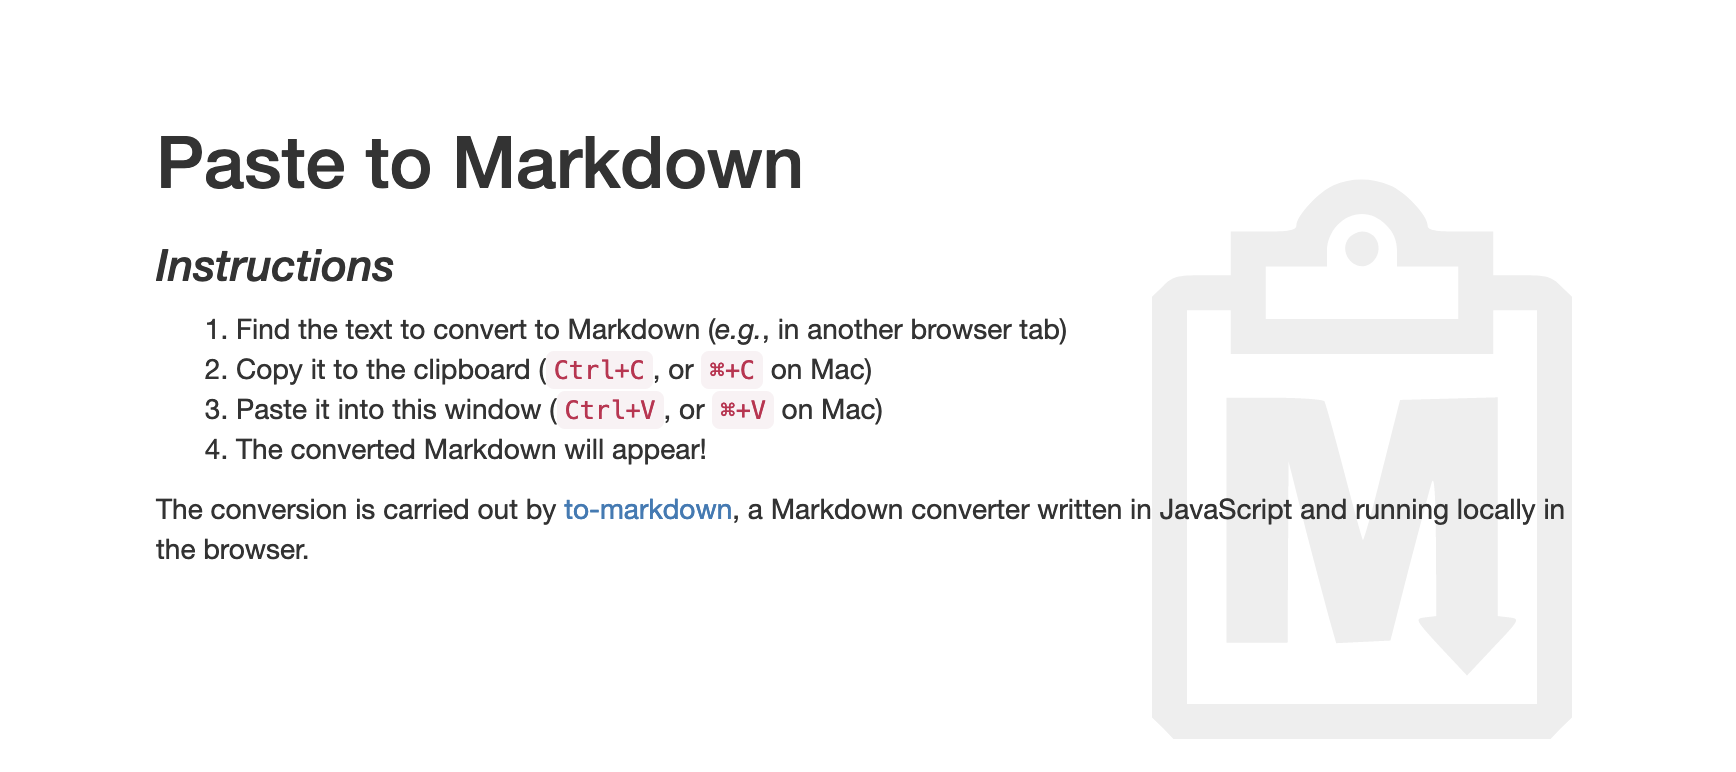 Instruction to convert pasted text to markdown